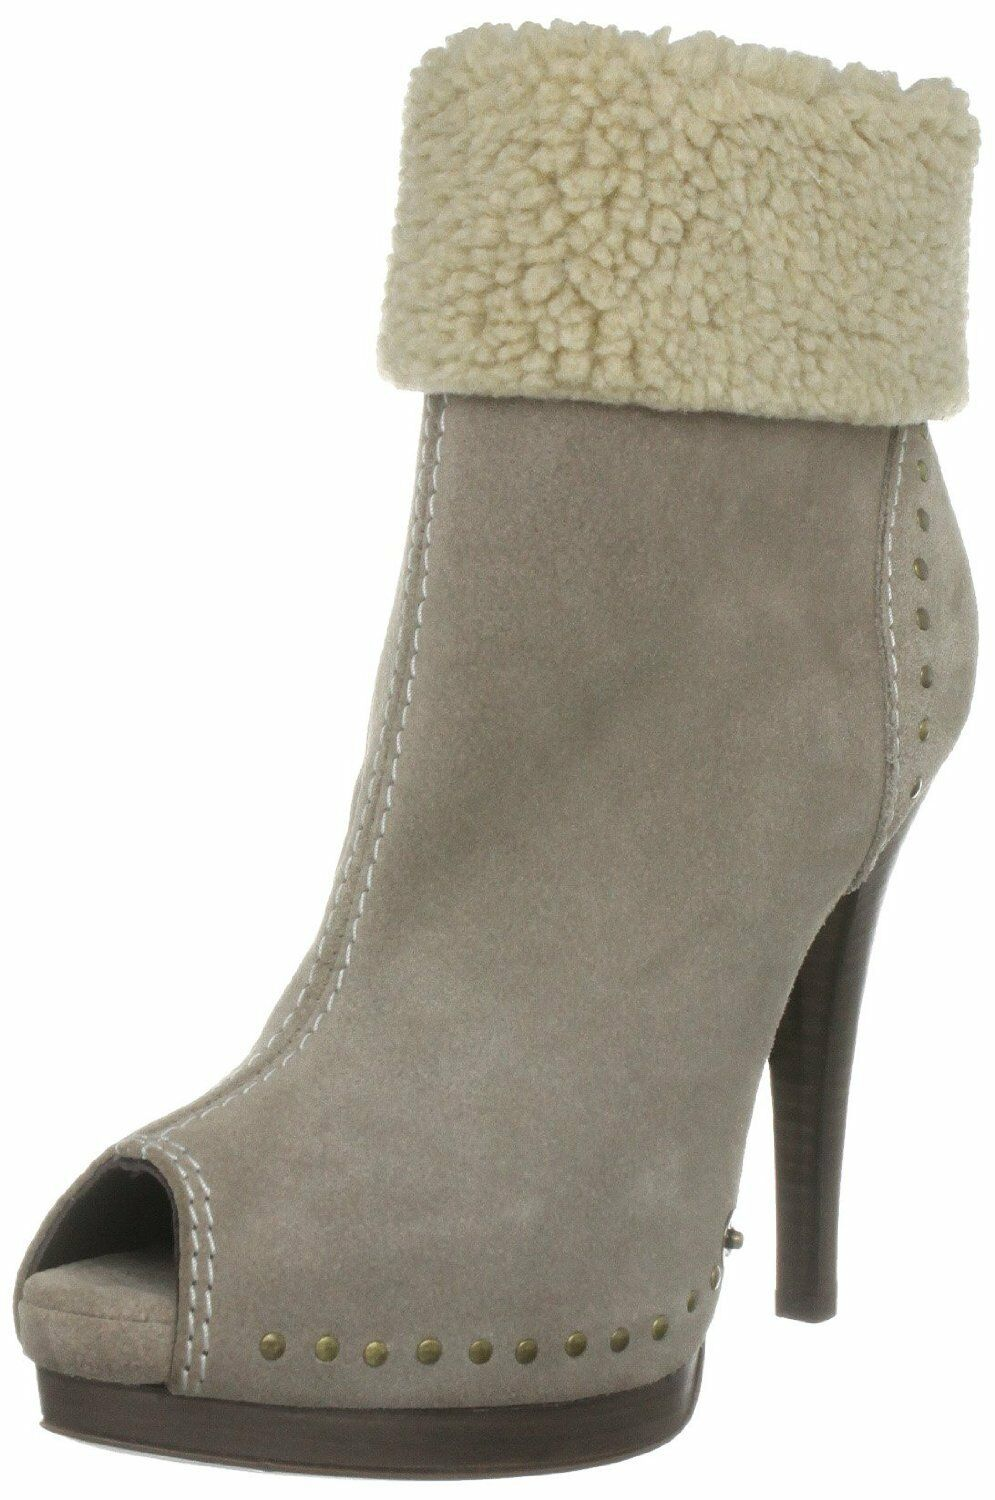 BNWB MISS SIXTY SIZE 5 6 6.5 7 7.5 8 NINA BEIGE SUEDE ANKLE BOOTS Schuhe